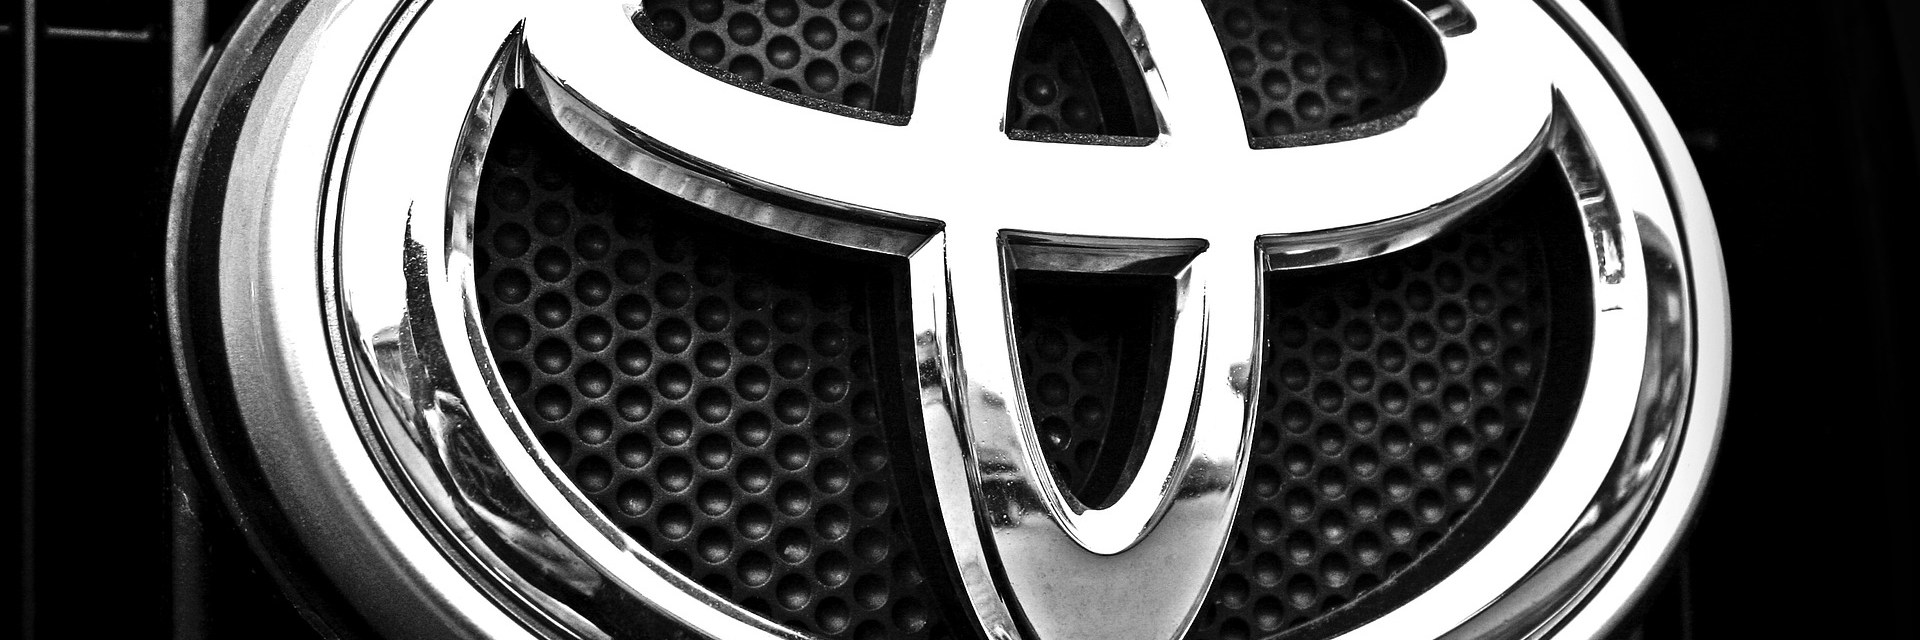 Toyota Hit With Data Breaches